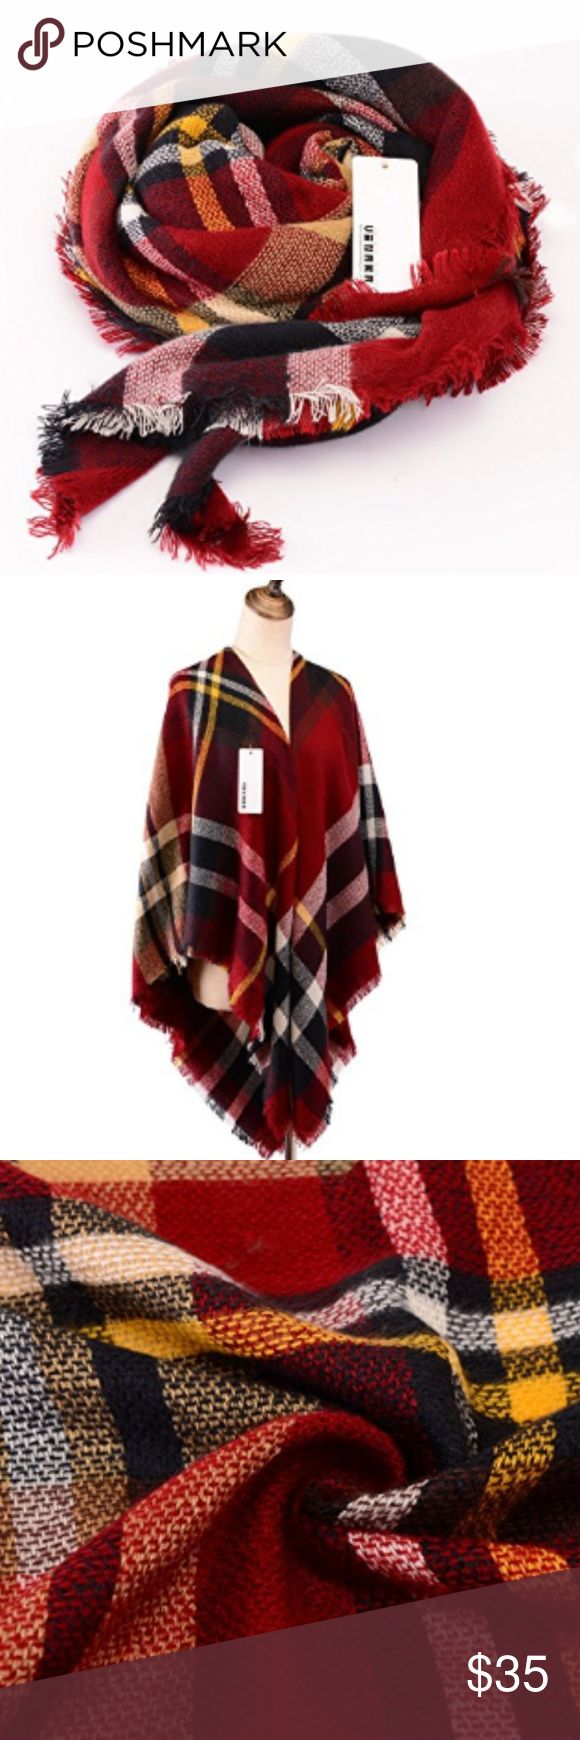 """Oversized burgundy  tartan plaid blanket scarf Gorgeously bright colors, super soft acrylic material, warm and cozy. Perfect look for fall and winter. Measures 55"""" x 55"""". 100% Acrylic fibers make this scarf unique, high quality, soft and super warm an coz"""